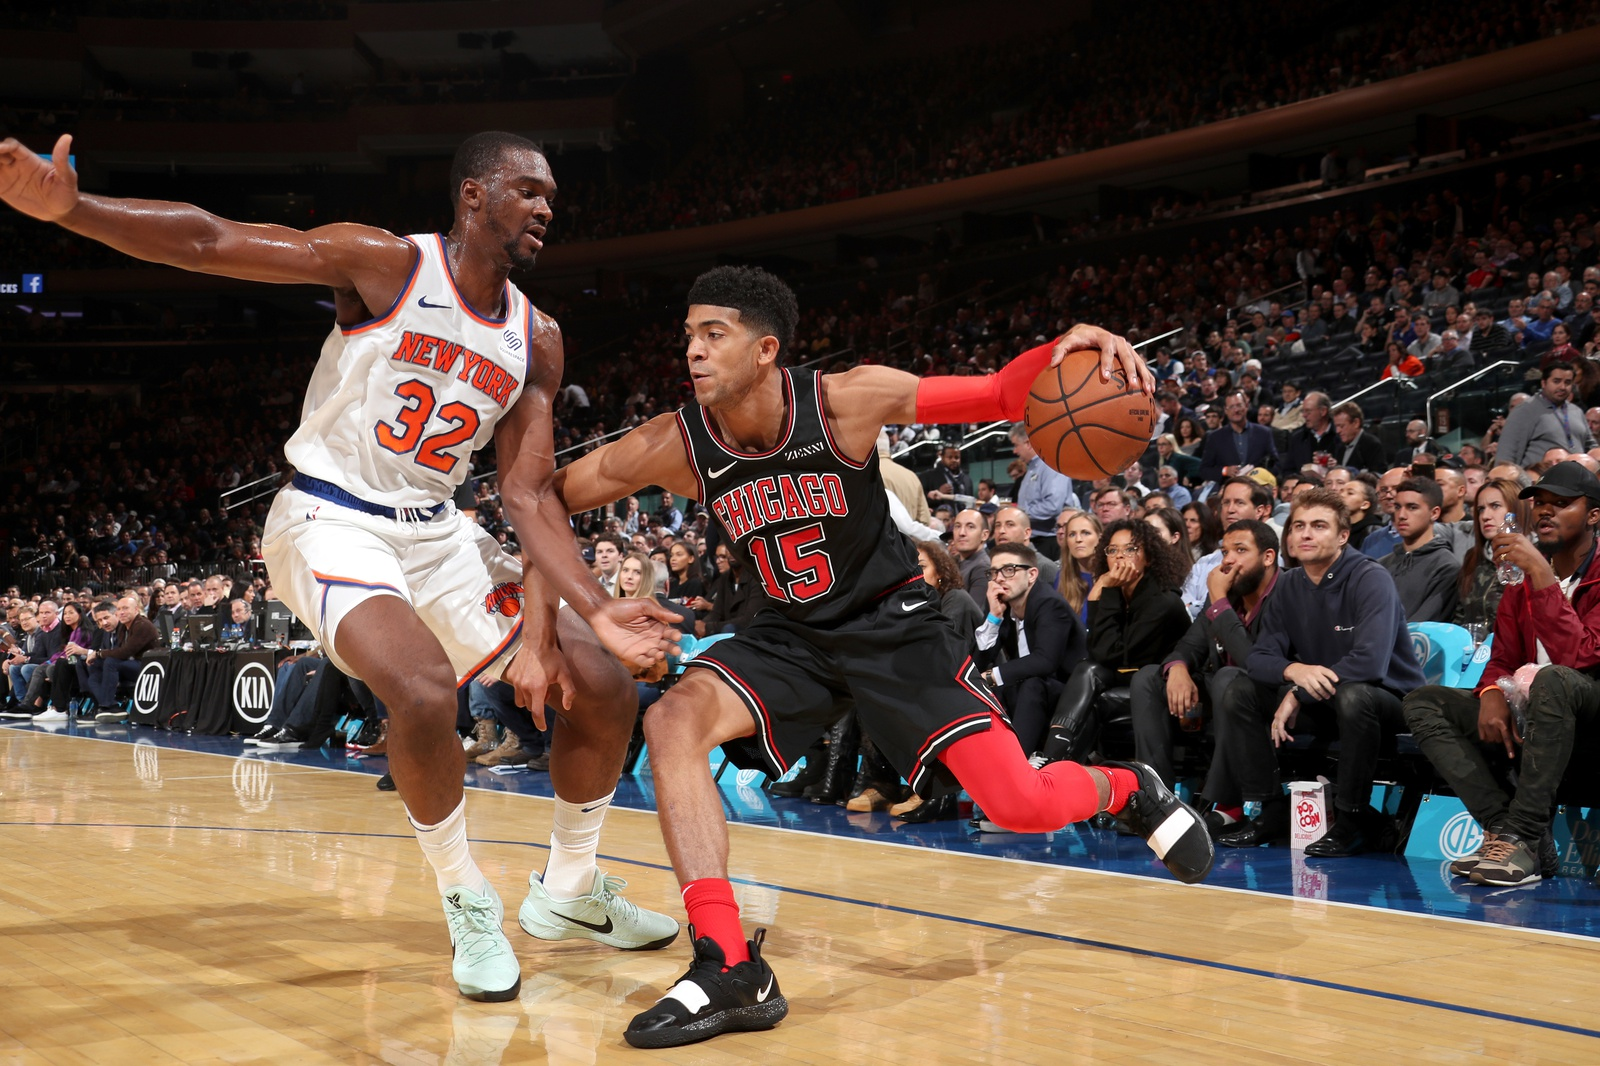 Chandler Hutchison #15 of the Chicago Bulls handles the ball against the New York Knicks on November 5, 2018 at Madison Square Garden in New York City, New York.